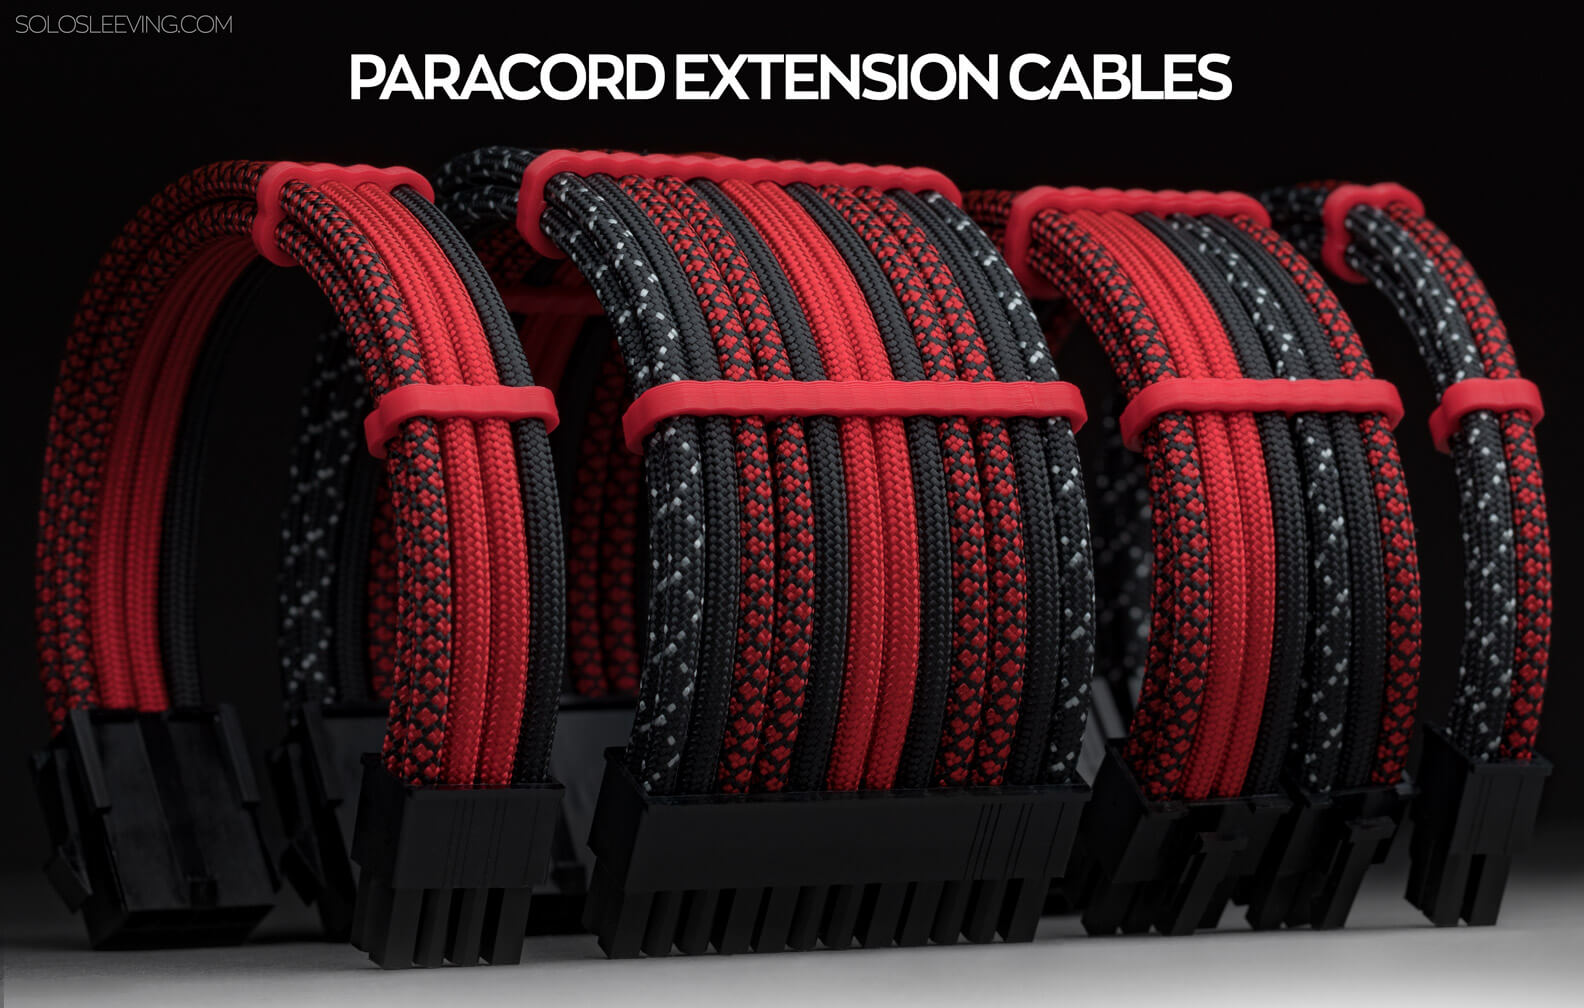 Handmade, custom paracord sleeved pc extension cables in red.